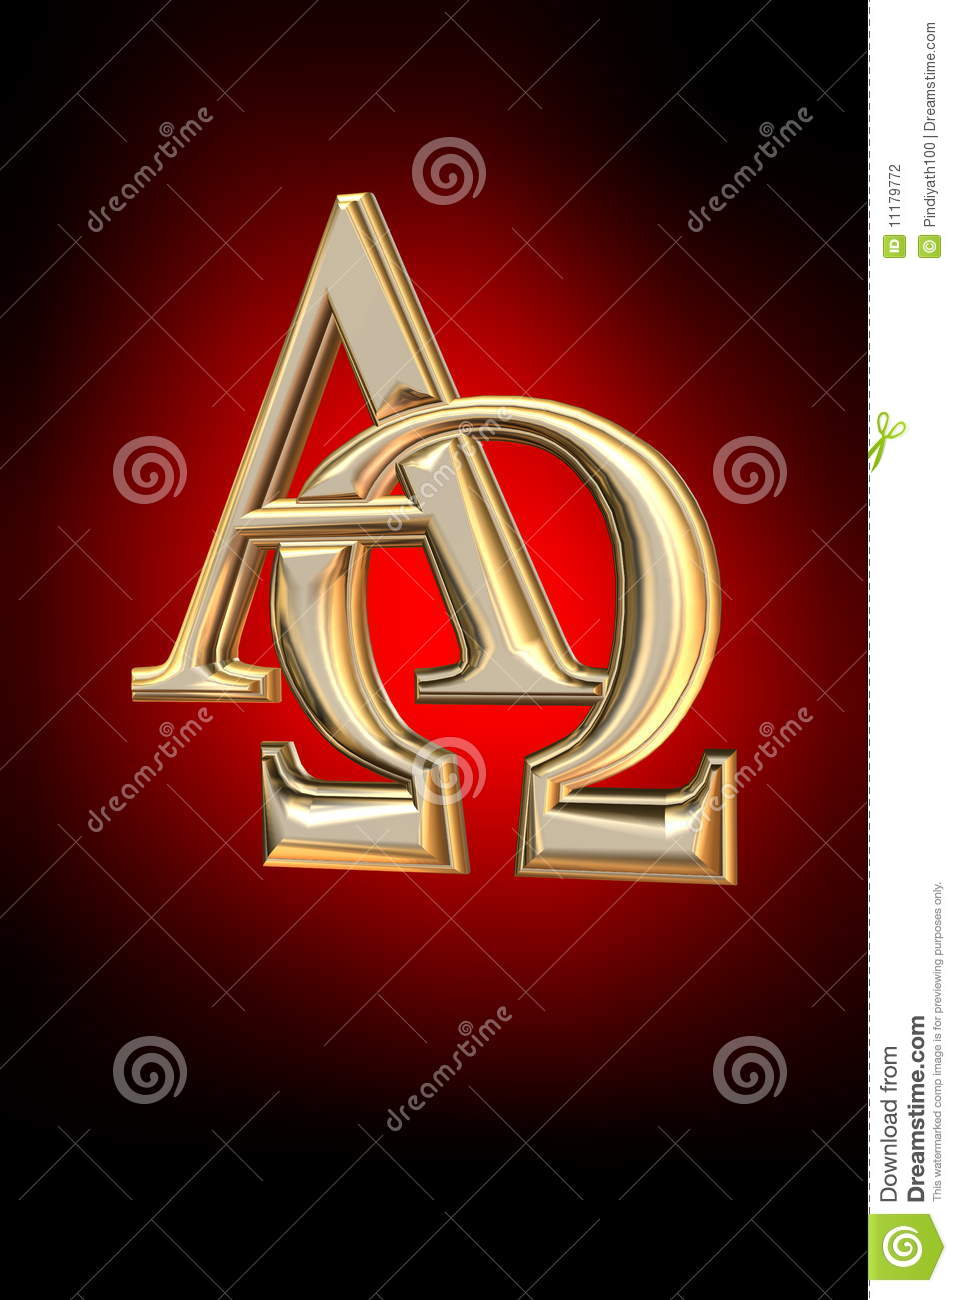 Alpha and omega symbol stock illustration illustration of alpha and omega symbol buycottarizona